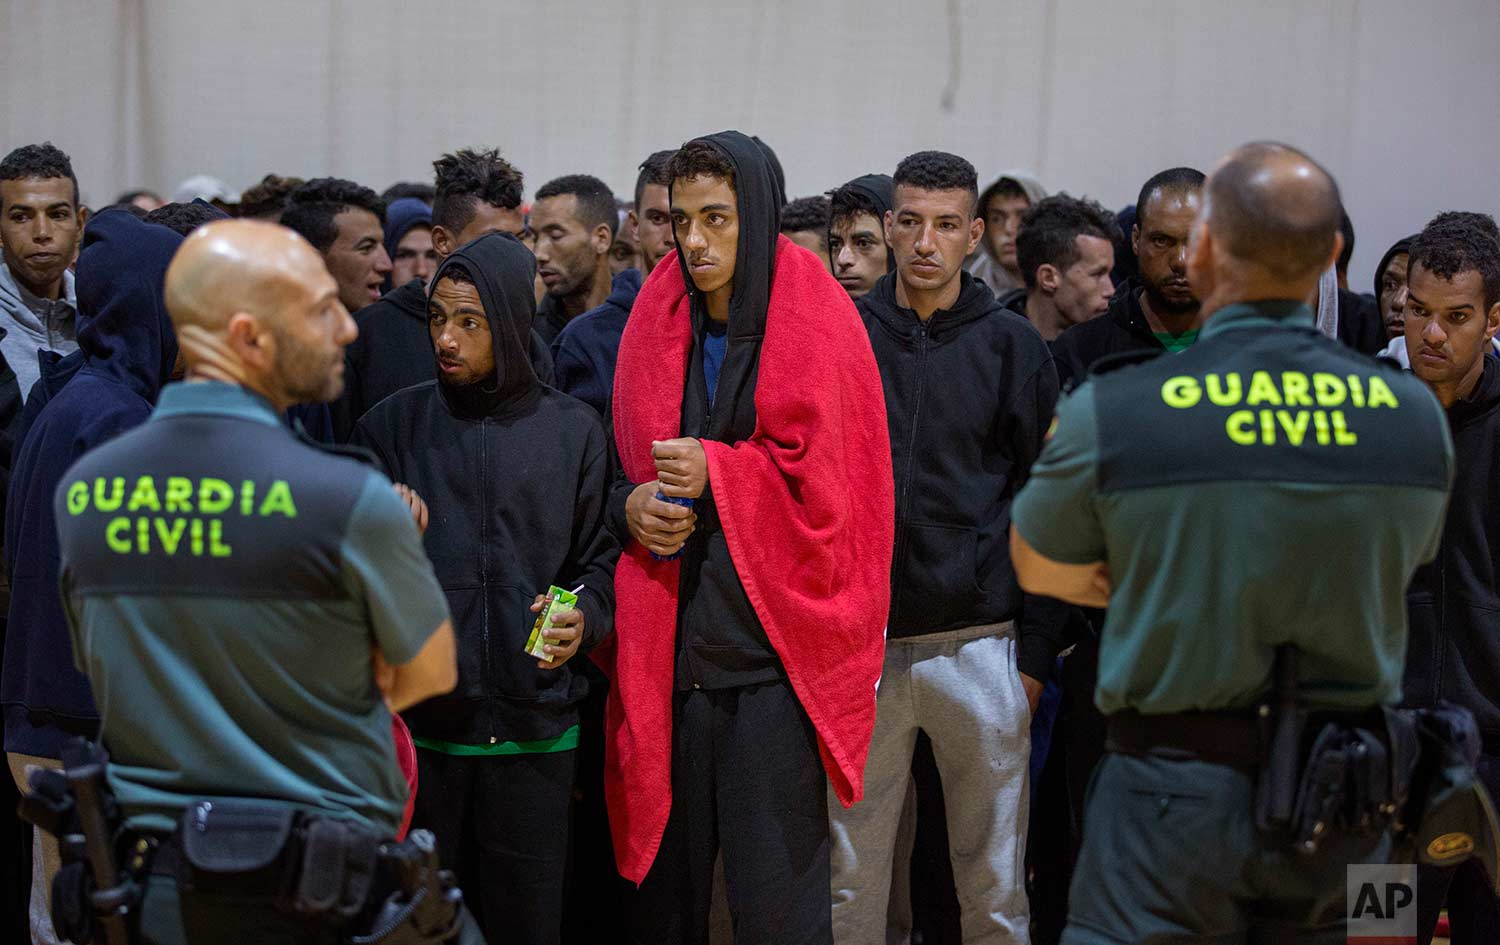 Guardia Civil officers stand guard as migrants gather at a makeshift emergency center for migrants at Barbate's municipal sports center, in the south of Spain, after being rescued by Spain's Maritime Rescue Service in the Strait of Gibraltar, Thursday, June 28, 2018. (AP Photo/Emilio Morenatti)